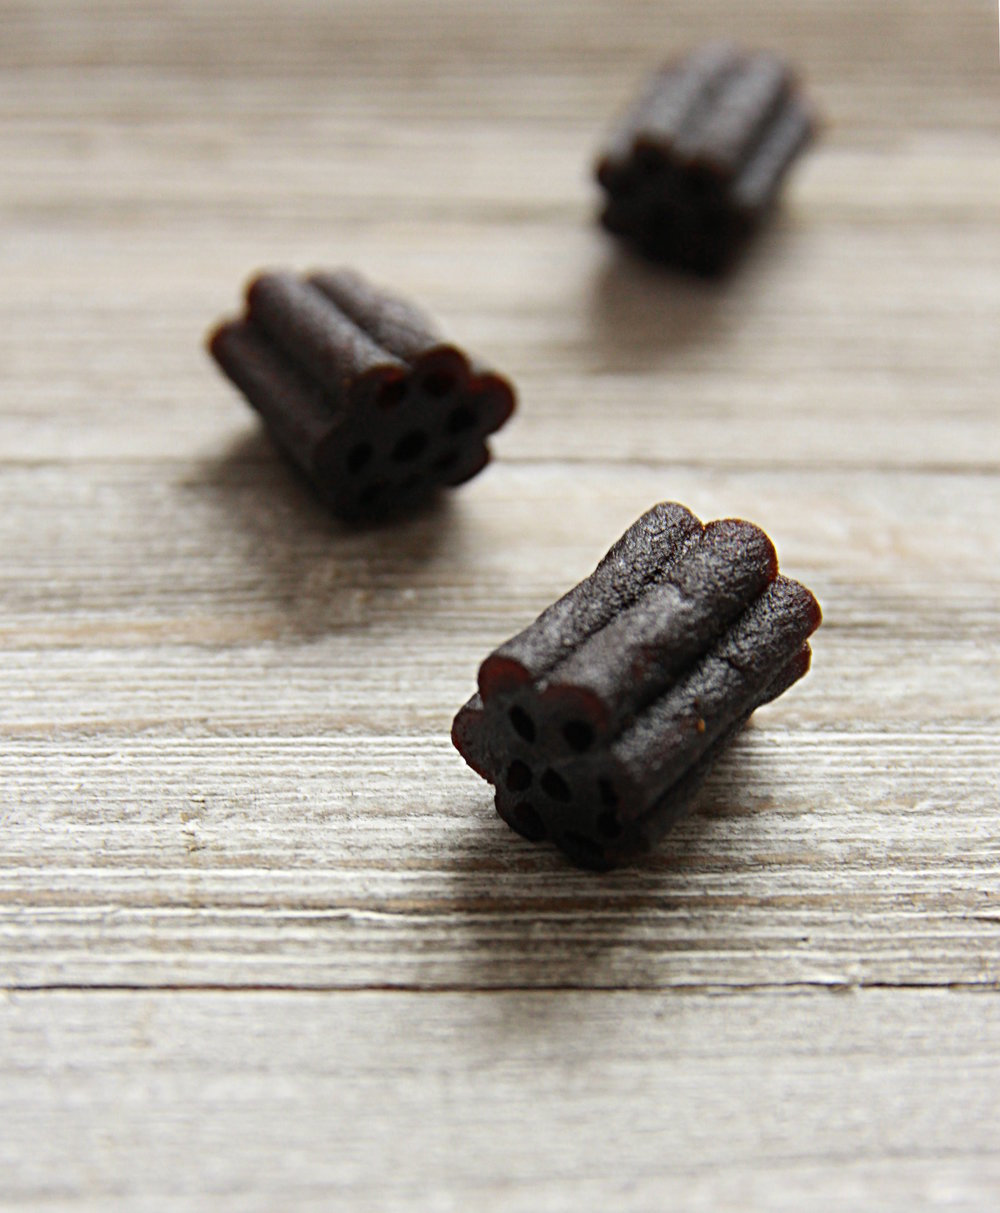 Neither gelatin nor pectin are an ingredient of these licorice jellies. Funny, isn't it? :)